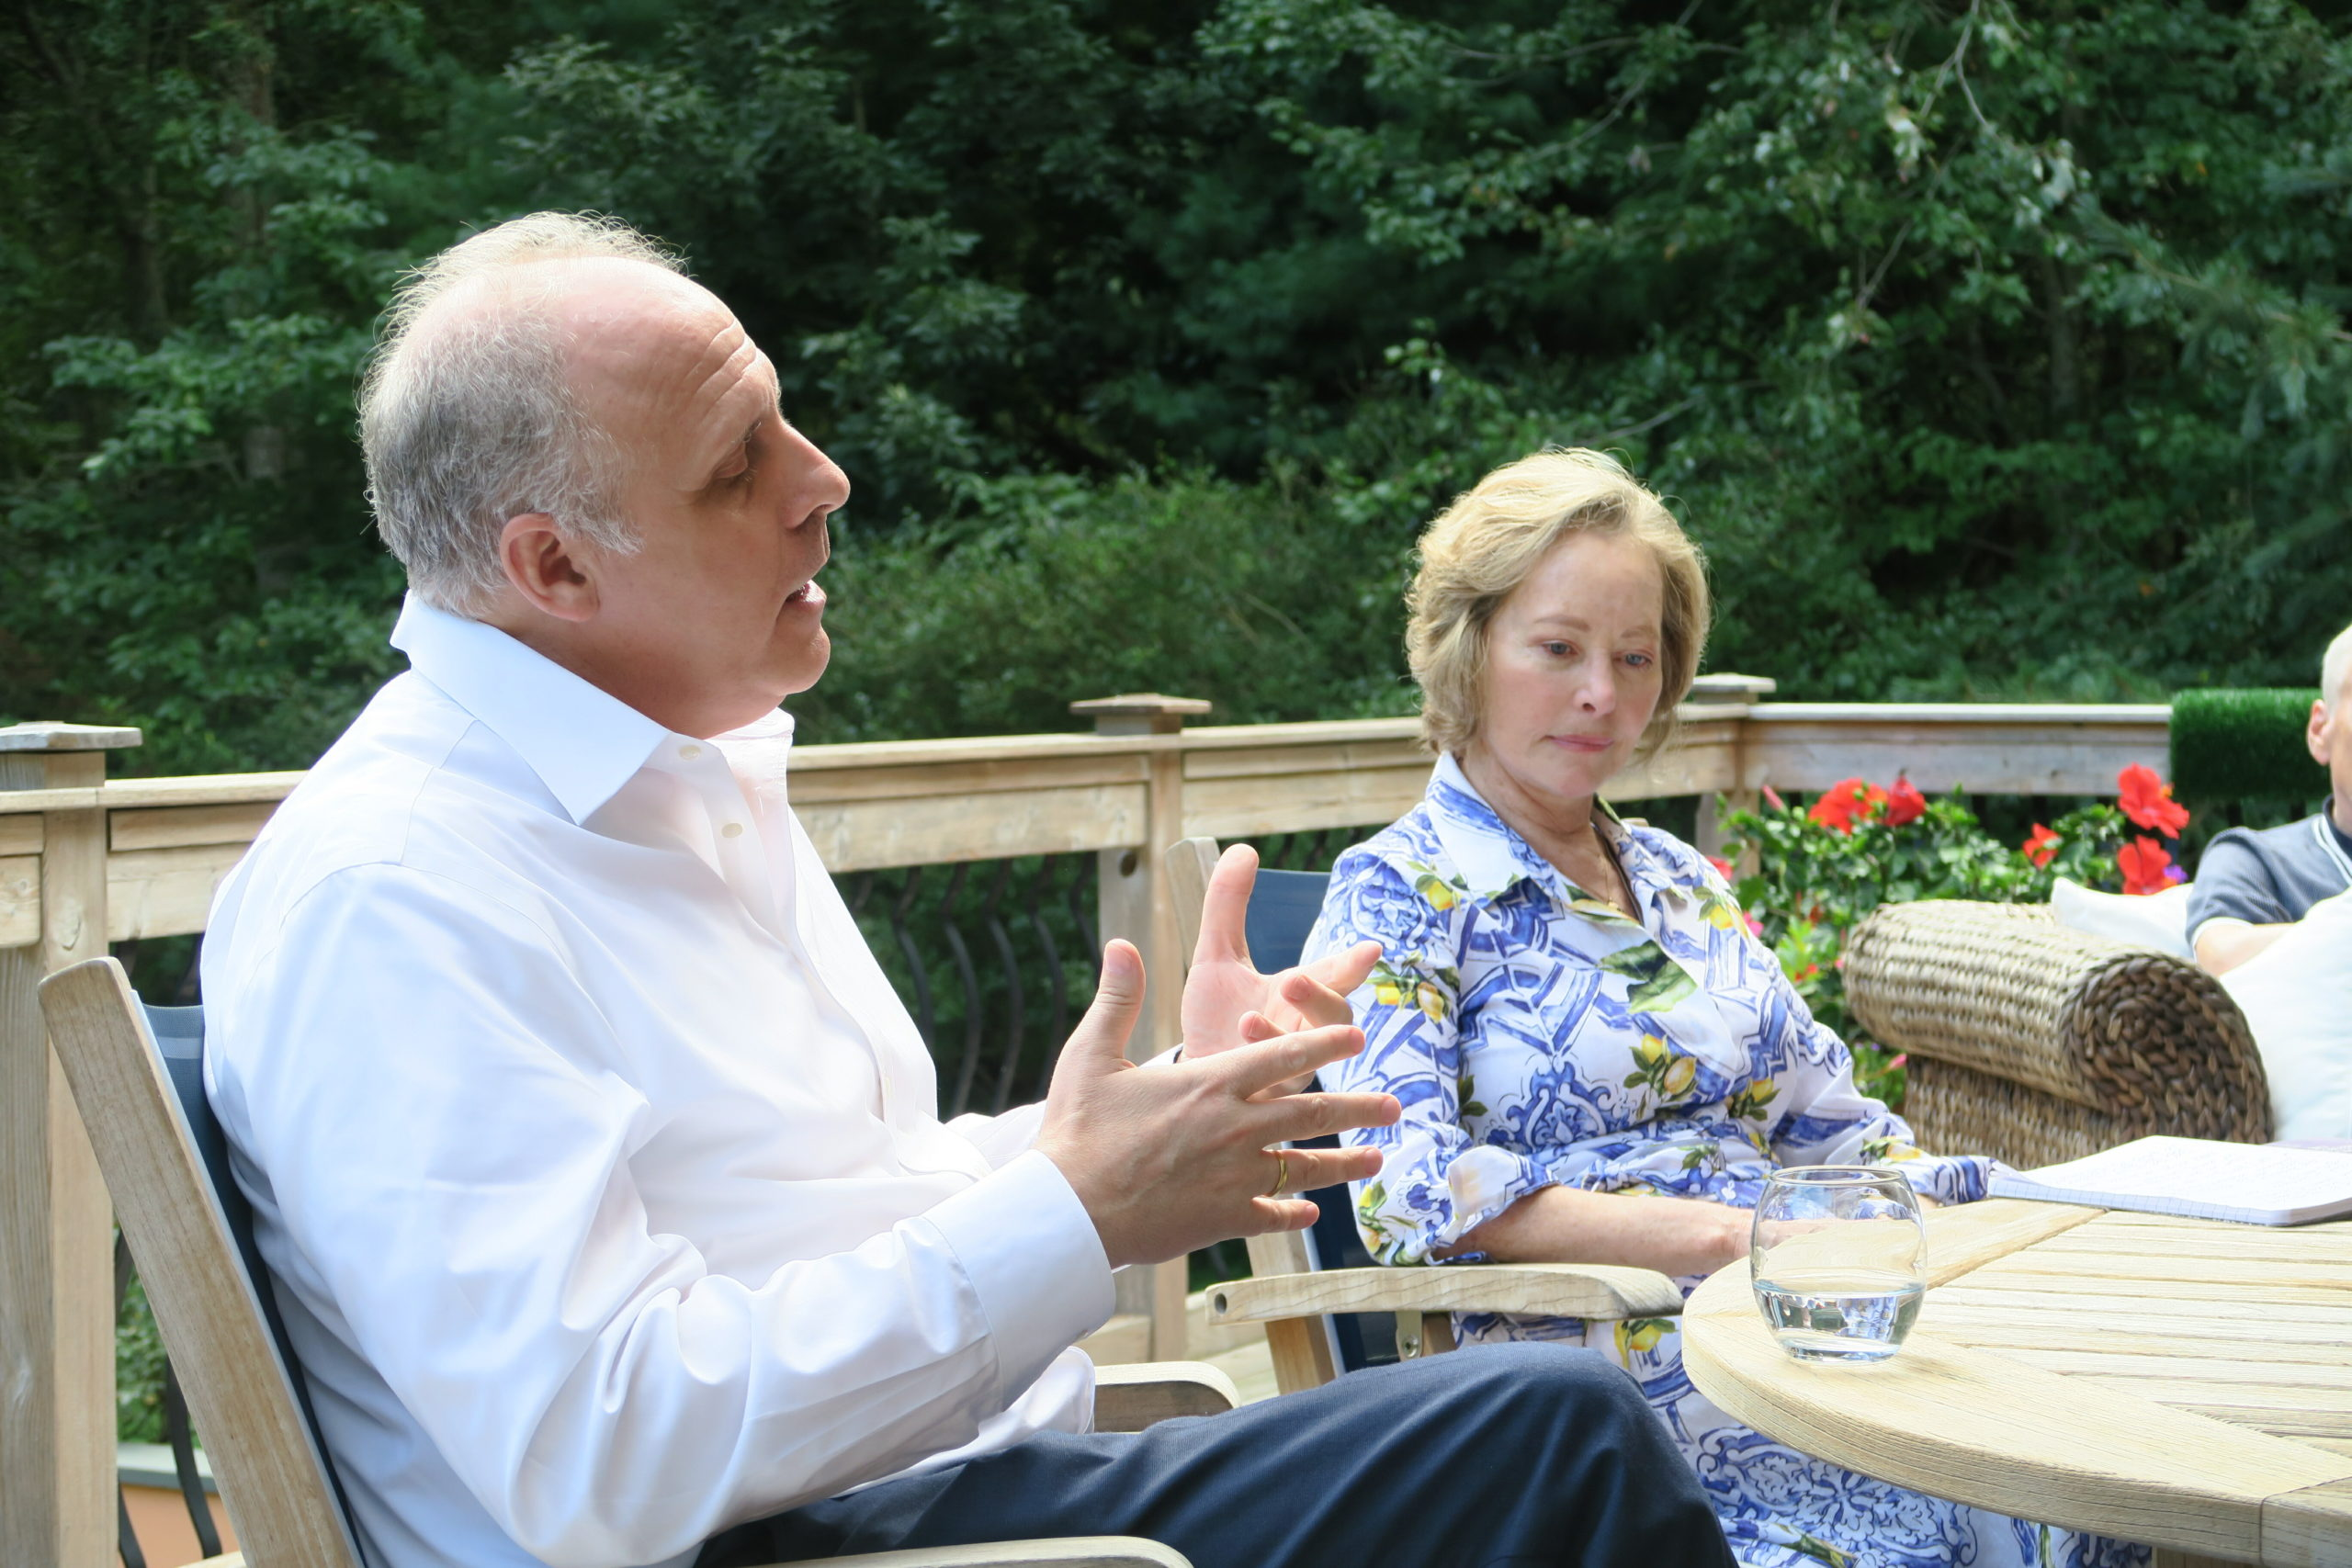 On Saturday, September 25, Dr. Ahron Friedberg, distinguished Manhattan and Sag Harbor psychiatrist and resident, held a reading and discussion of his book,